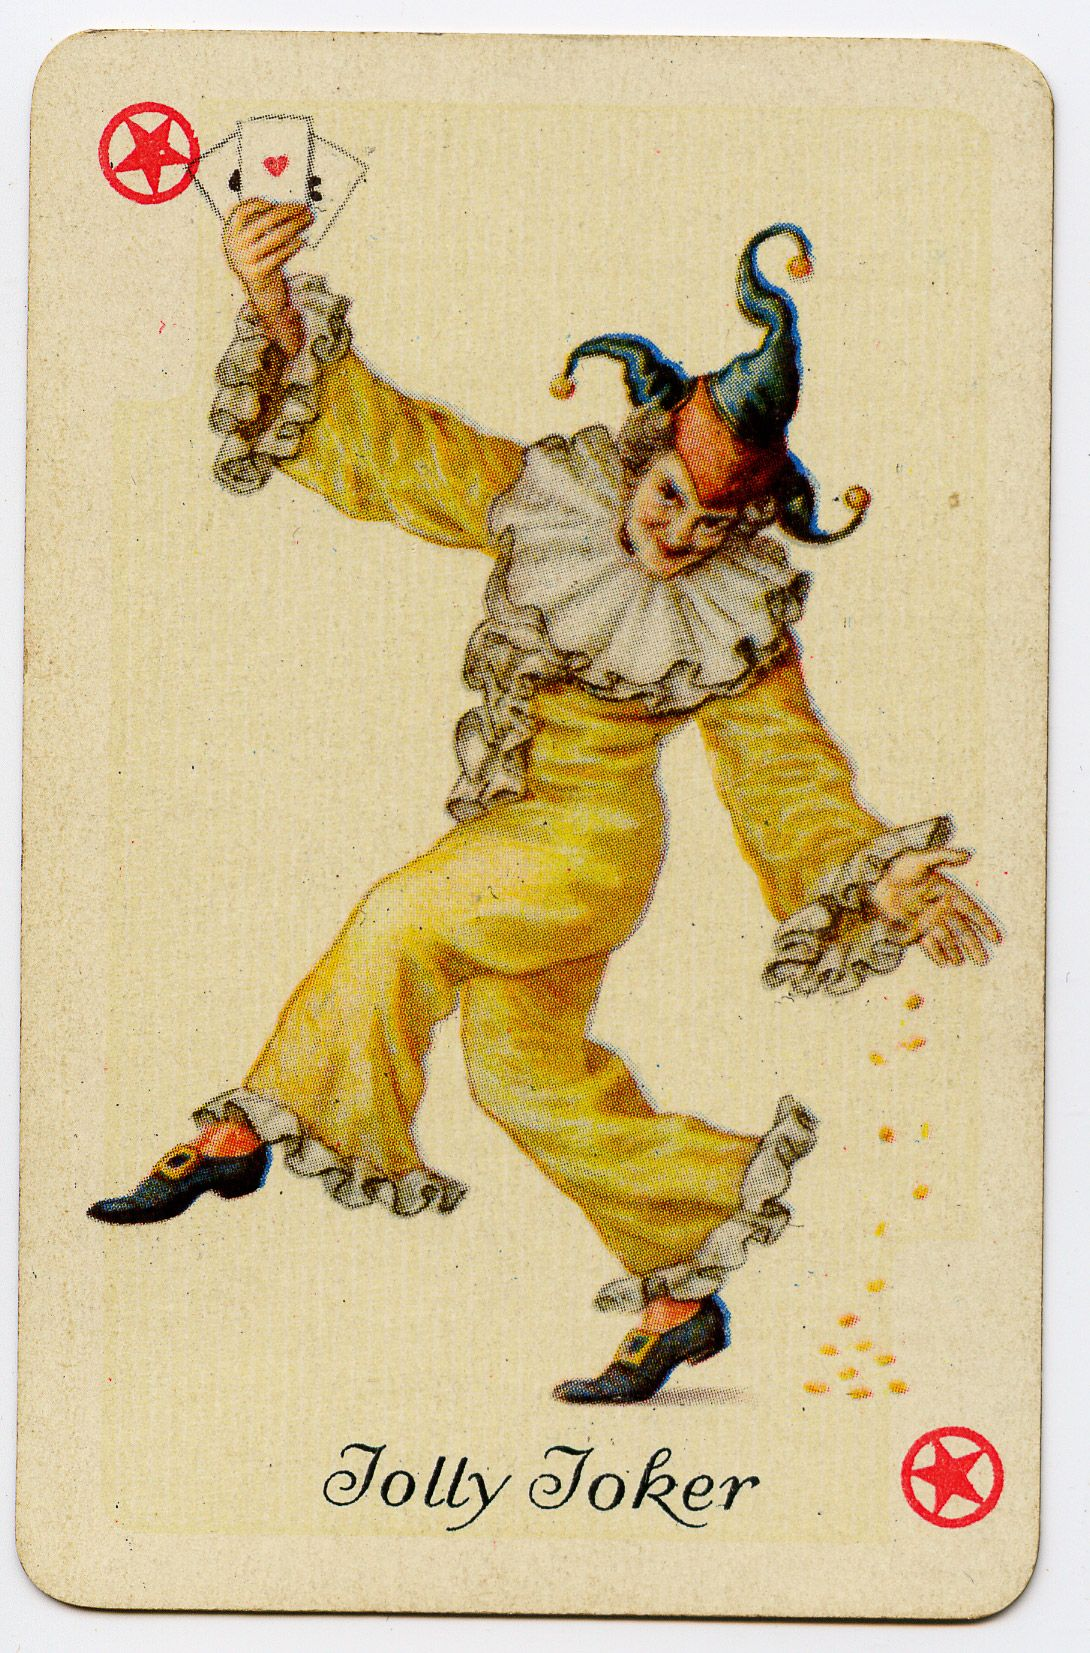 All sizes | Playing card joker | Flickr - Photo Sharing